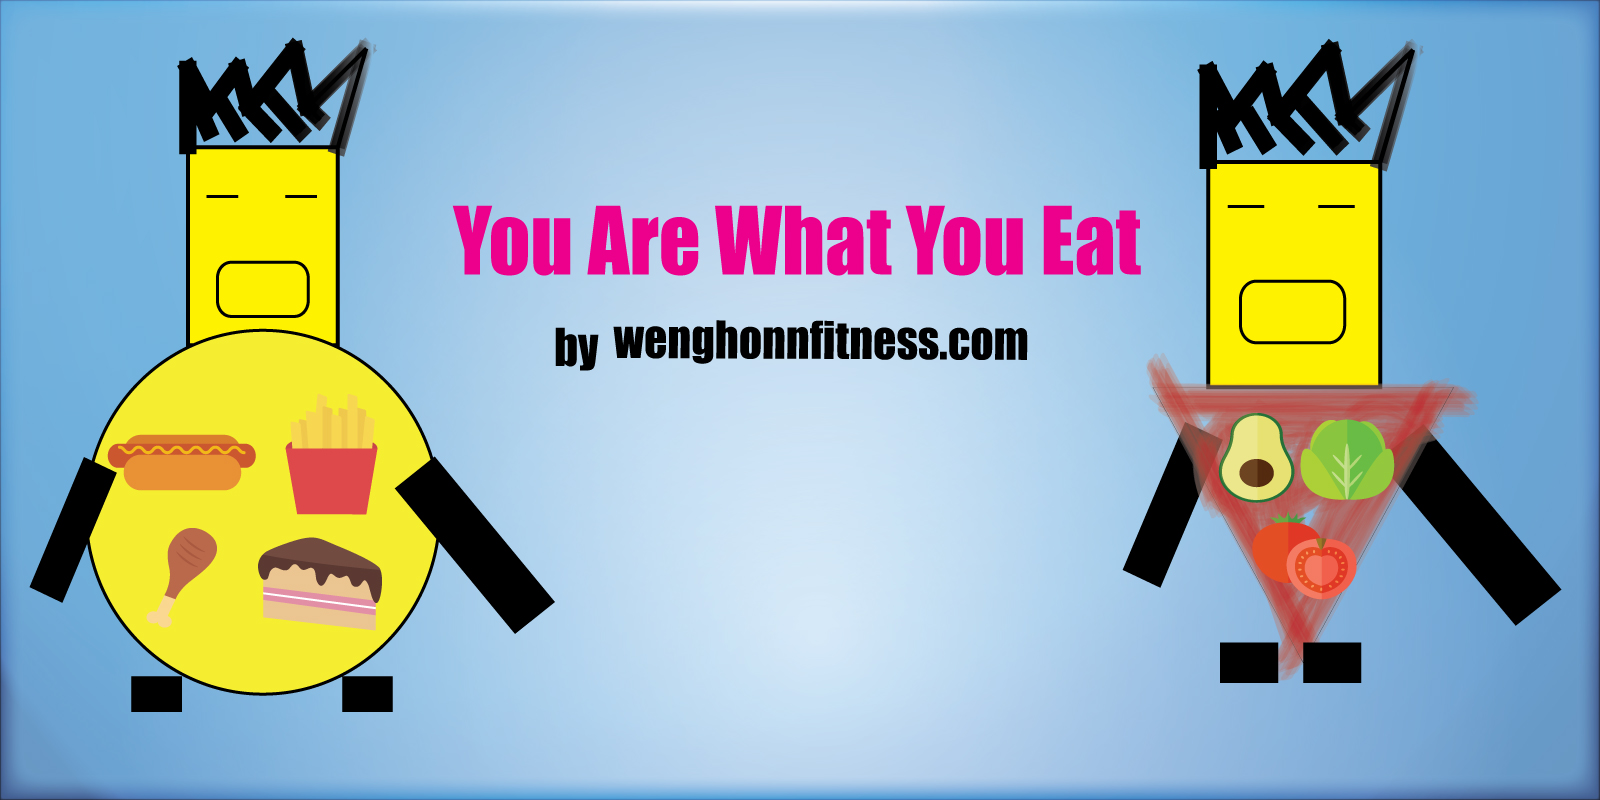 If you eat healthy food you will be losing weight ,and be healthy.If you eat fast food,you will gain some shit weight,and your body will be shitty as well